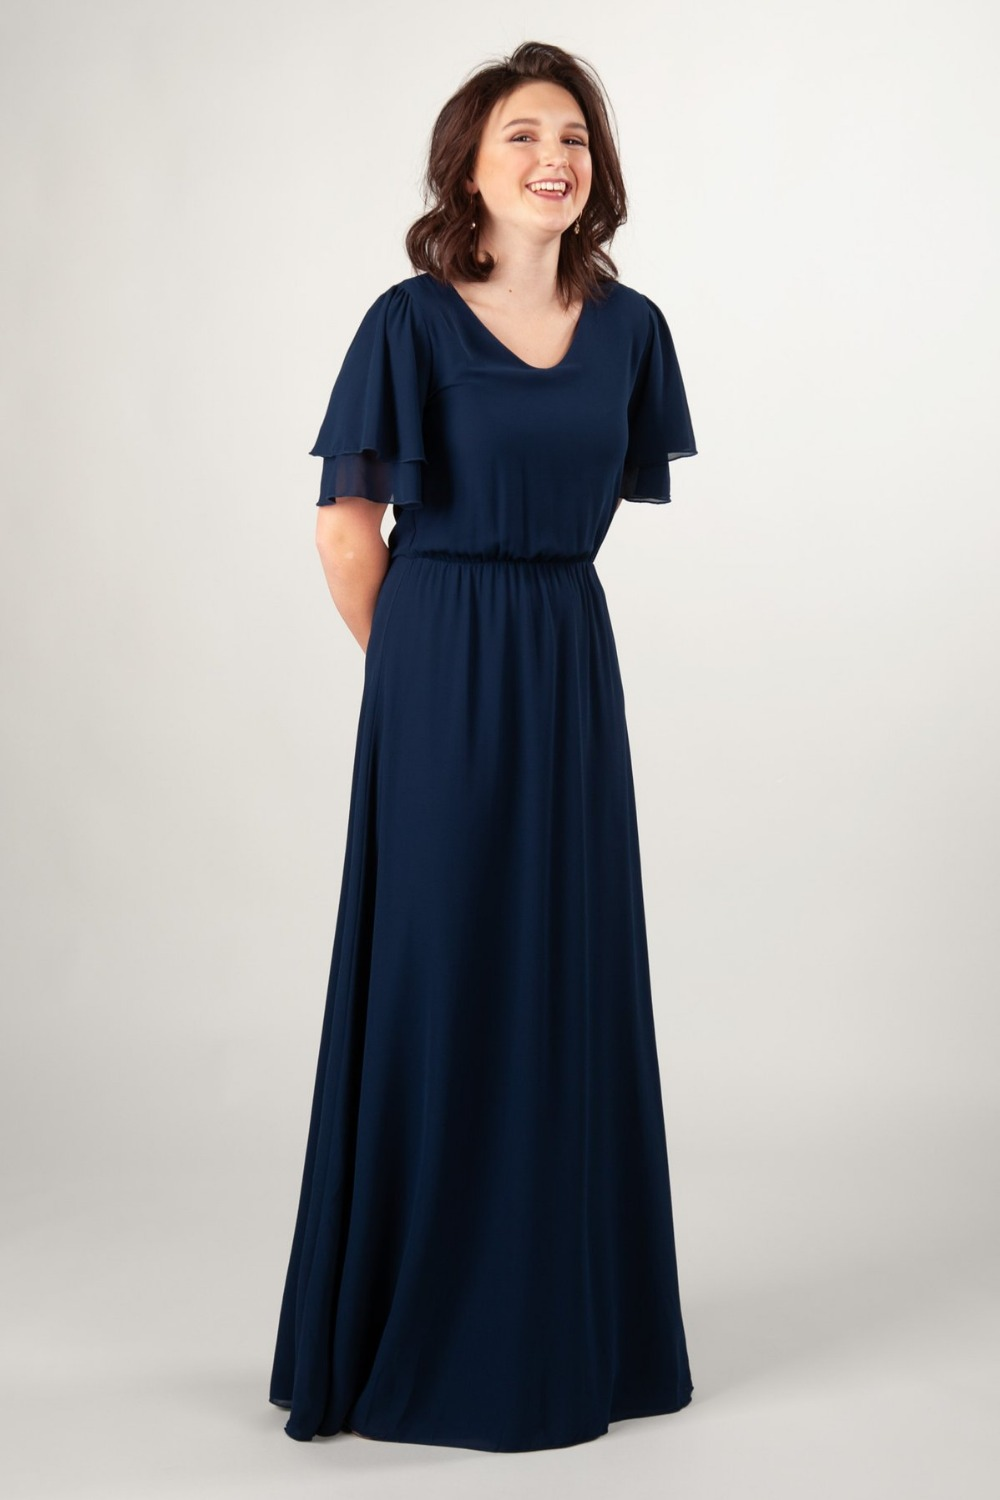 Dark Navy Blue Chiffon A-line Modest   Bridesmaid     Dresses   With Flutter Sleeves Long Floor Length Summer Boho   Bridesmaid     Dress